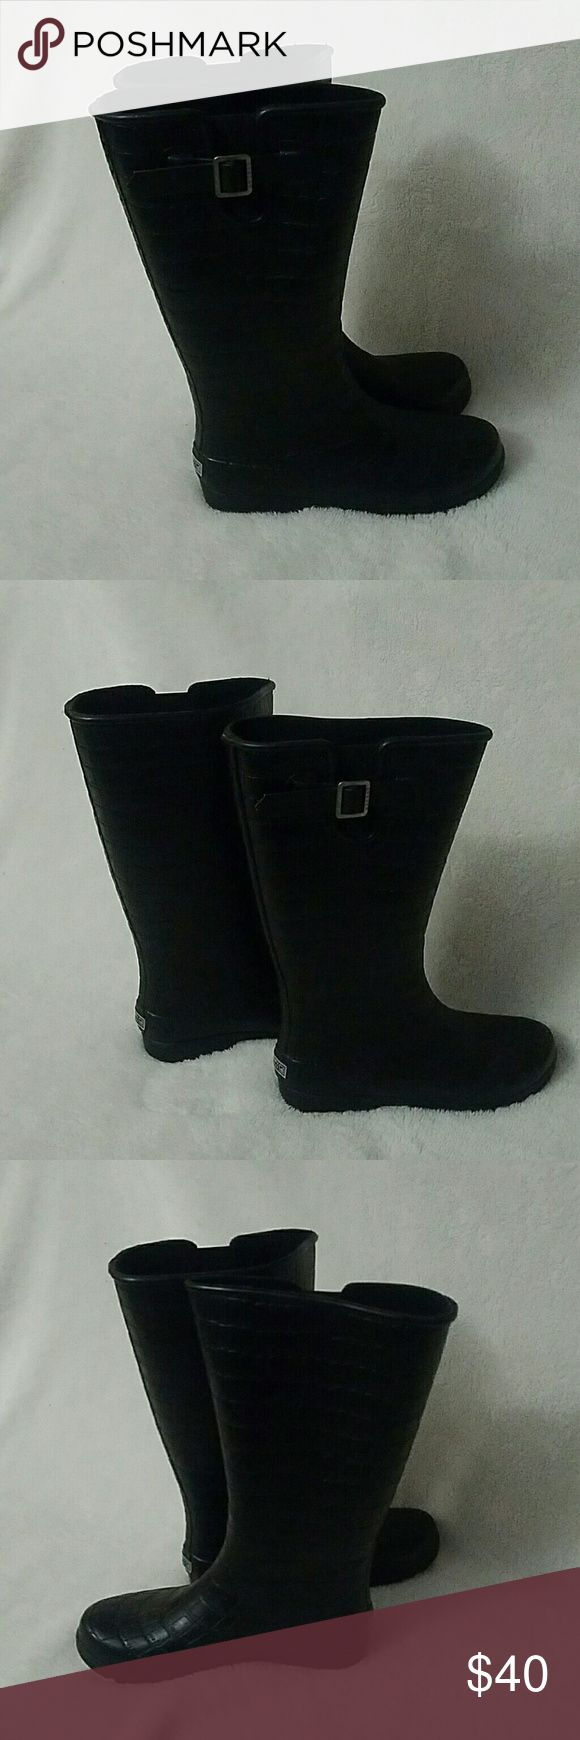 Sperry top-sider rain boots Sperry top sider rain boots. Black in color. The inside is lined with fabric to keep feet warm. Used very few times and in excellent condition. Sperry Shoes Winter & Rain Boots